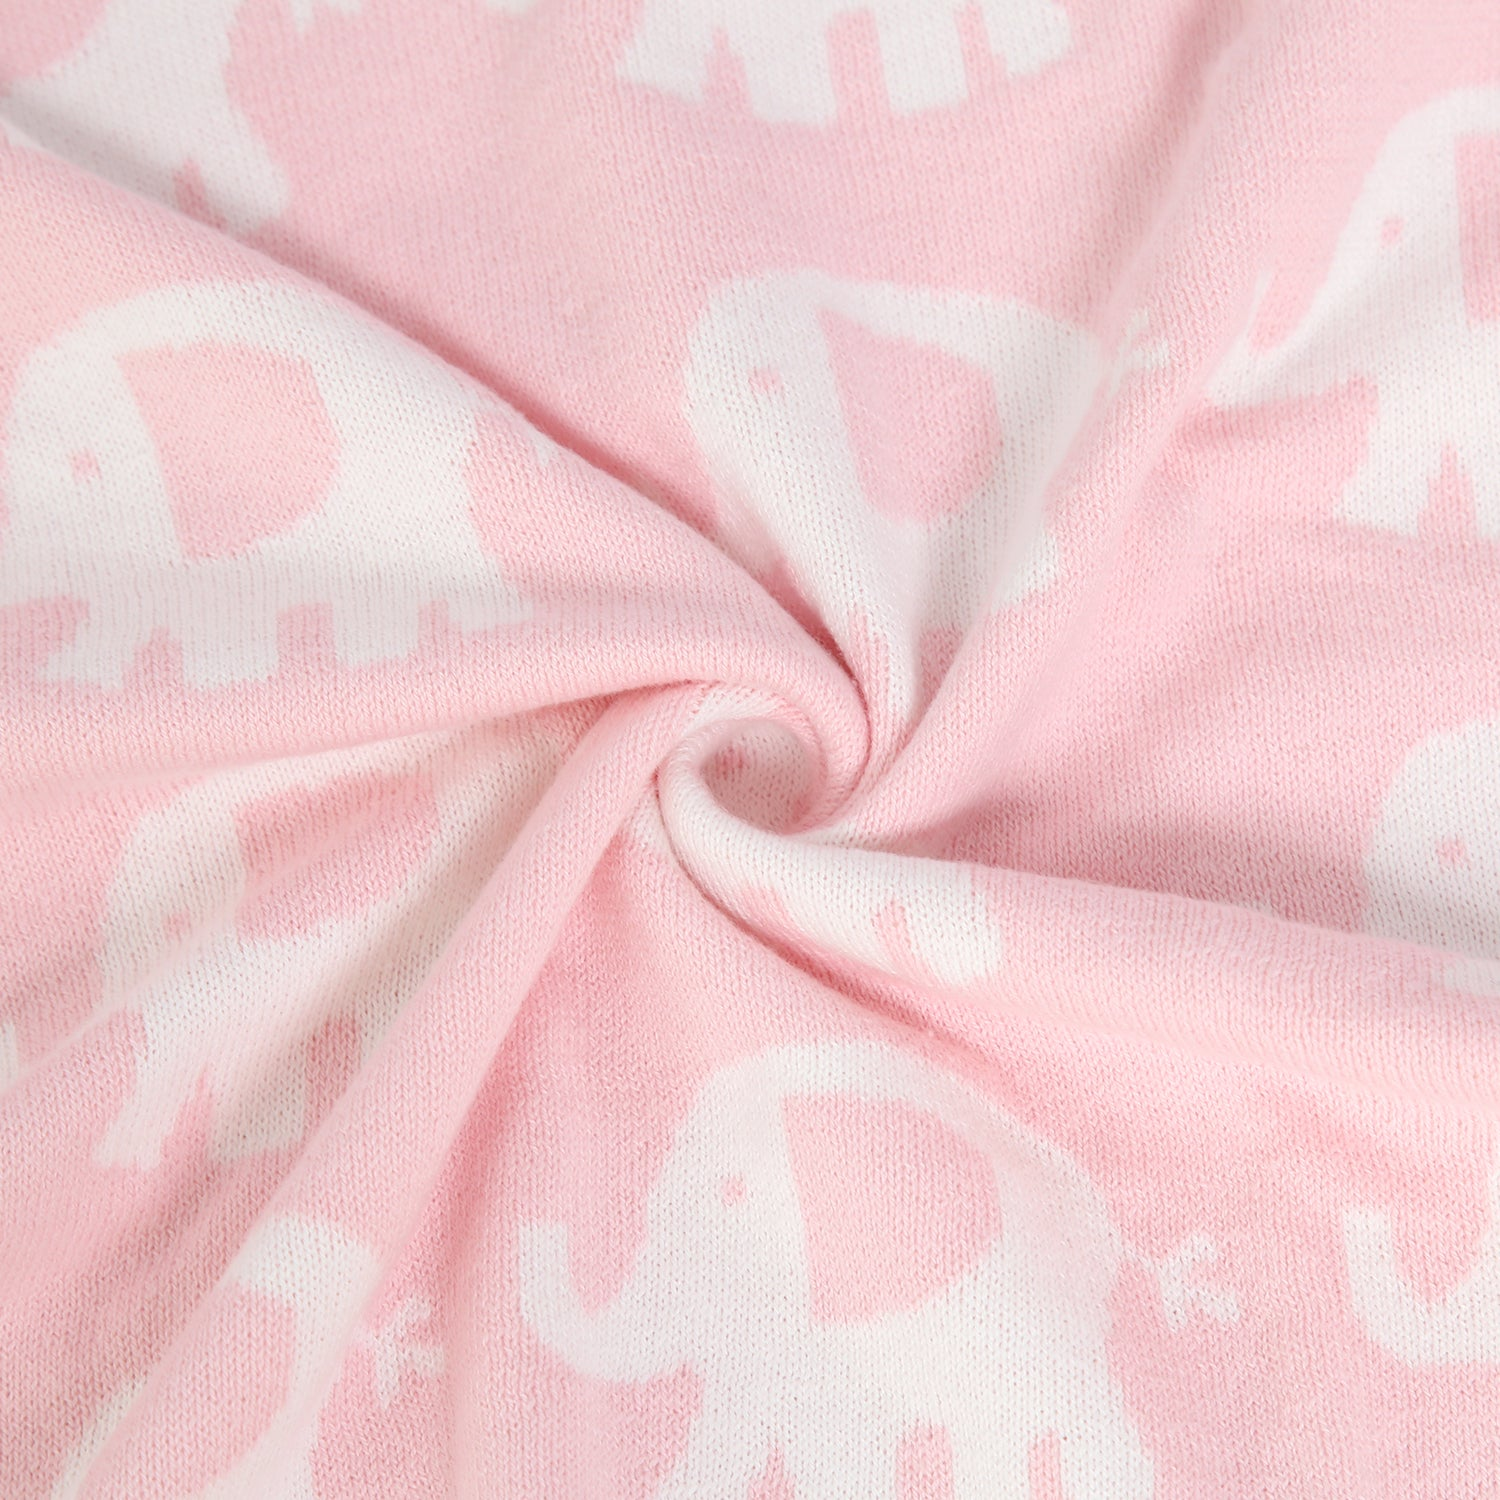 100% Cotton Sweater Knit Baby Blanket - Elephant